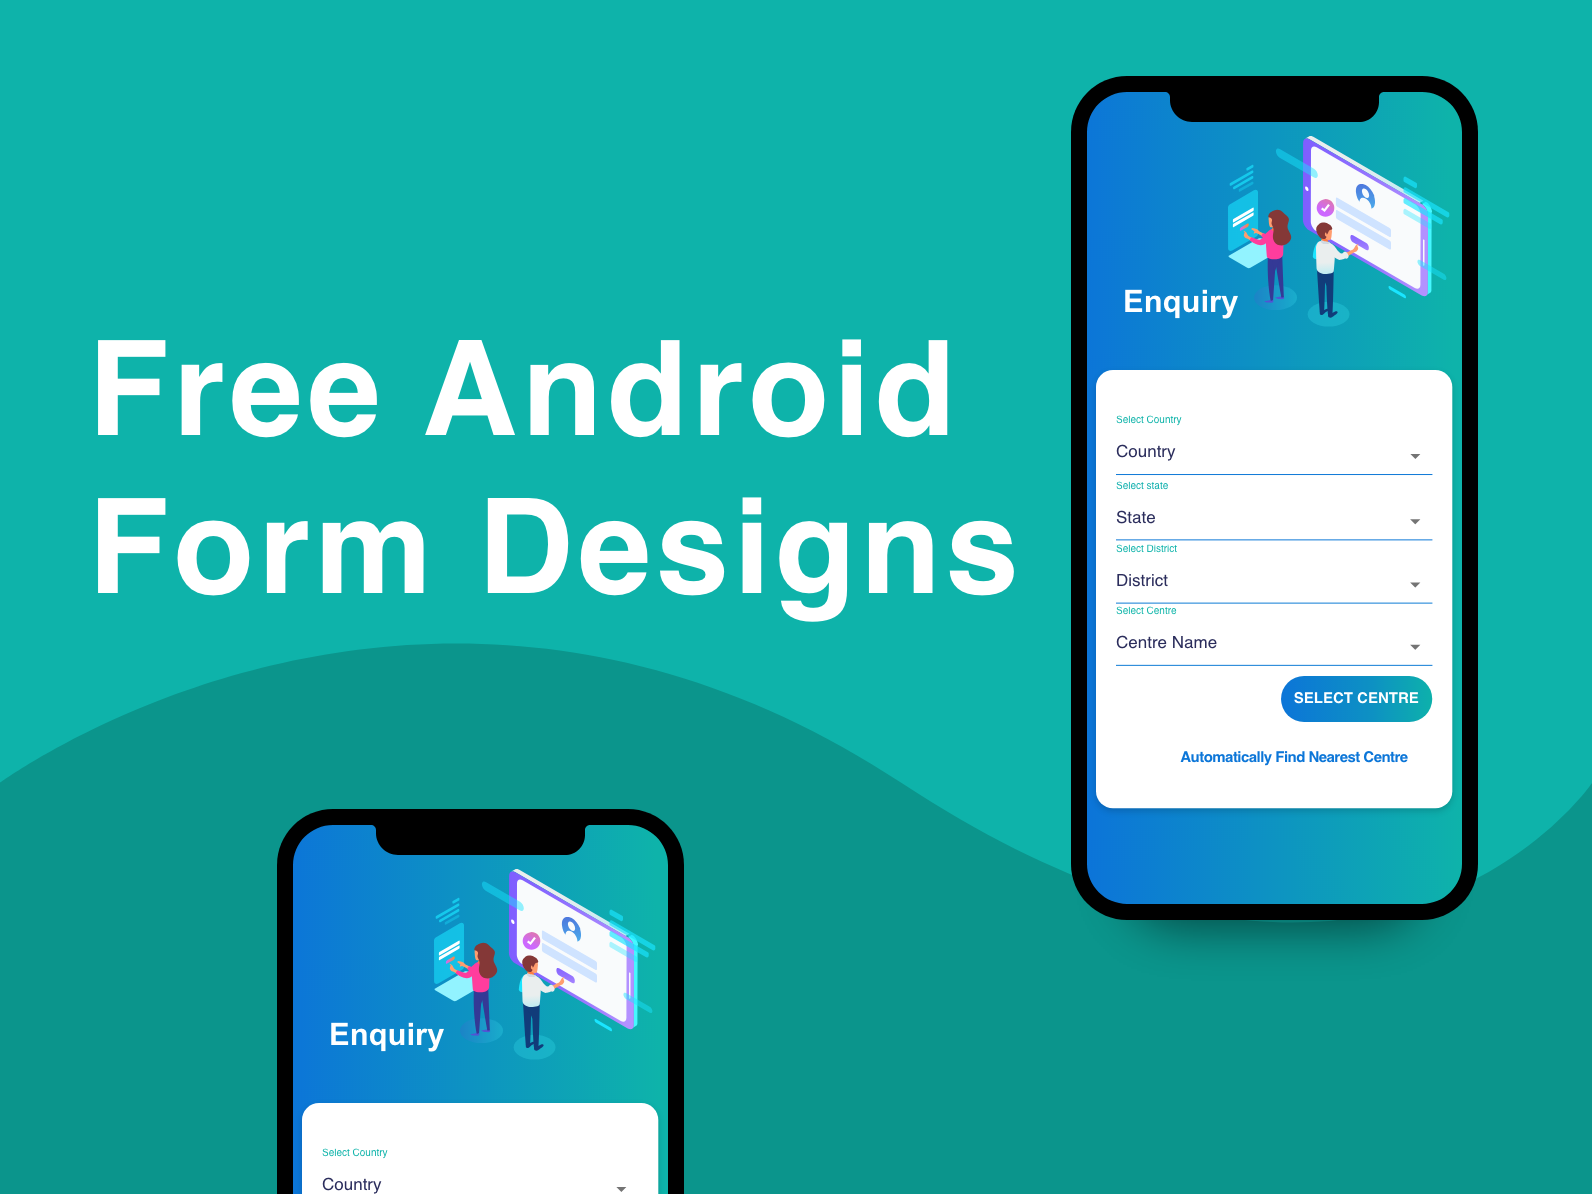 Android Form Designs by Kapil Mohan on Dribbble